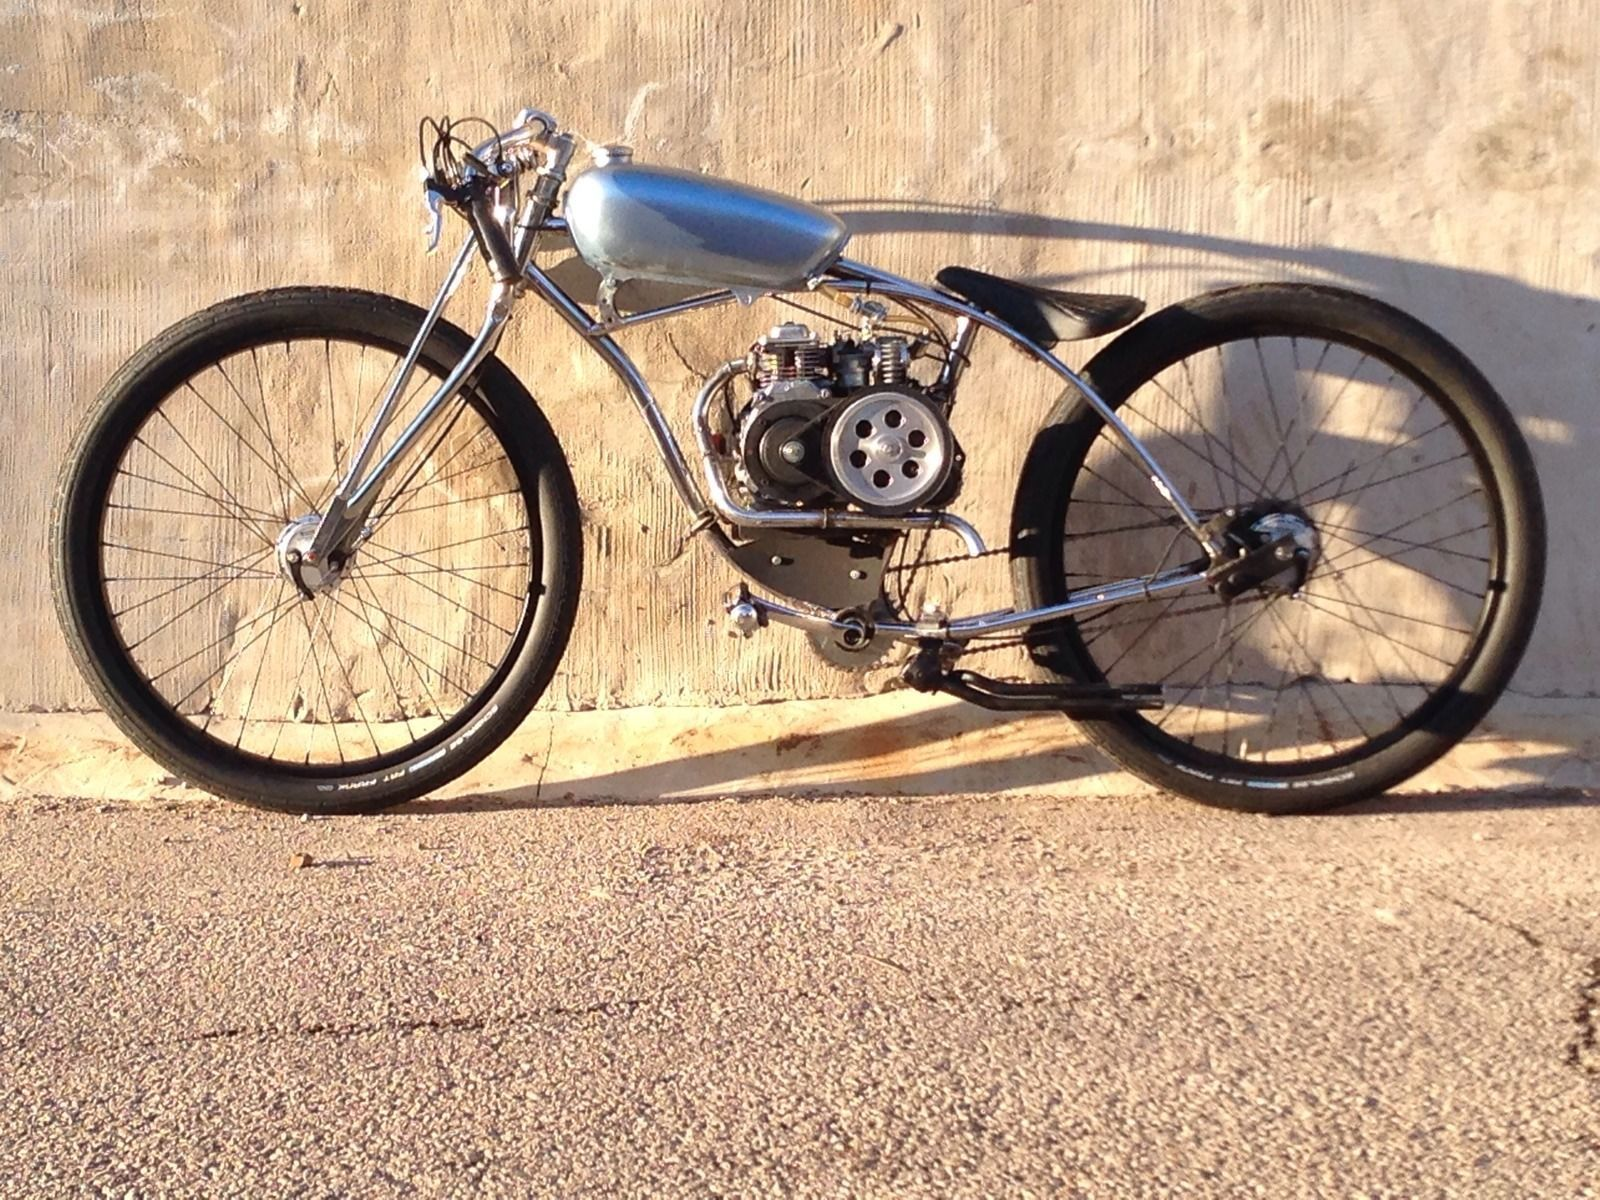 7d7073f27e4 Boardtrack Racer Inspired Motorized Bicycle | eBay | custom scooter ...